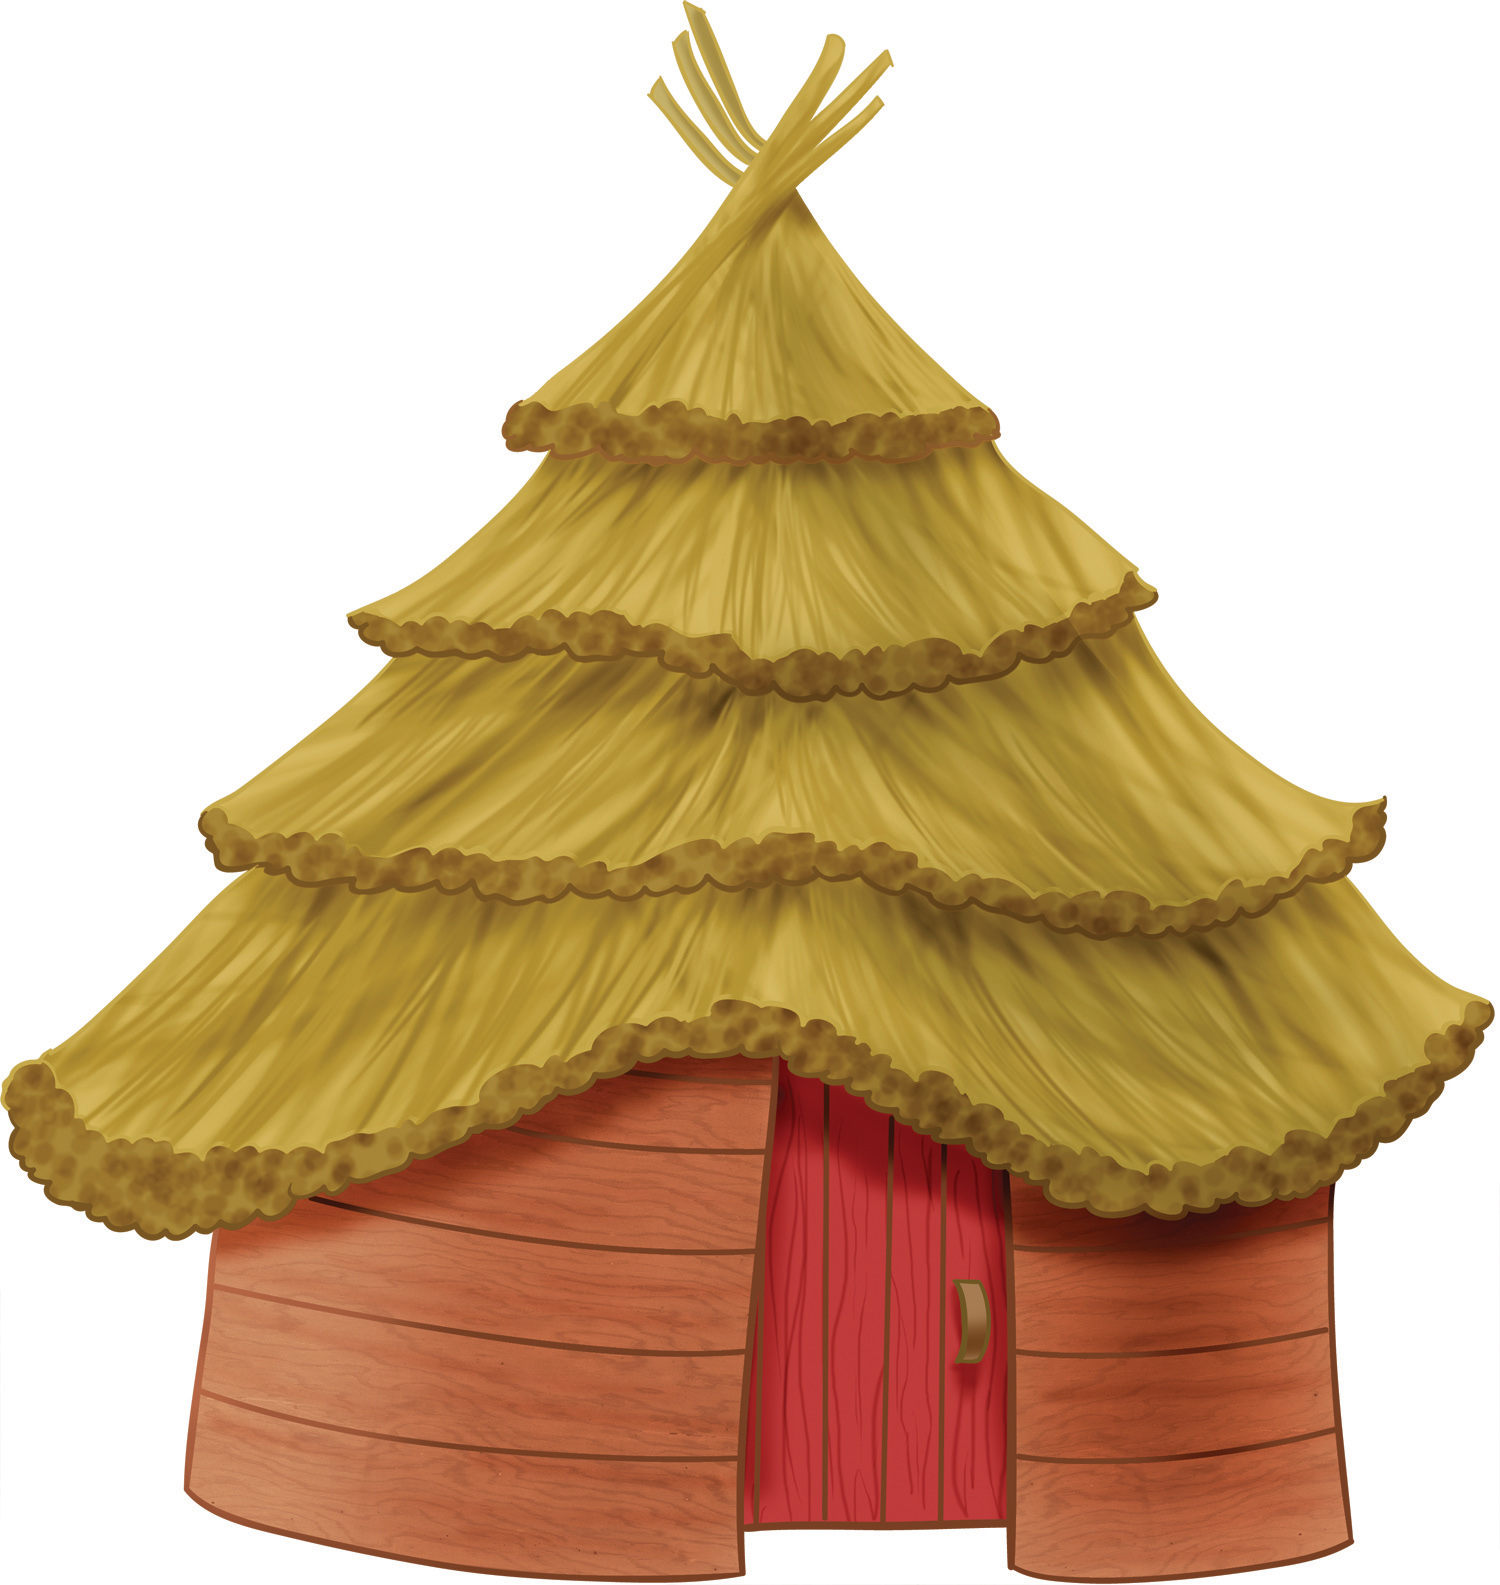 Shack clipart different house Hut Clip Free Hut Clipart